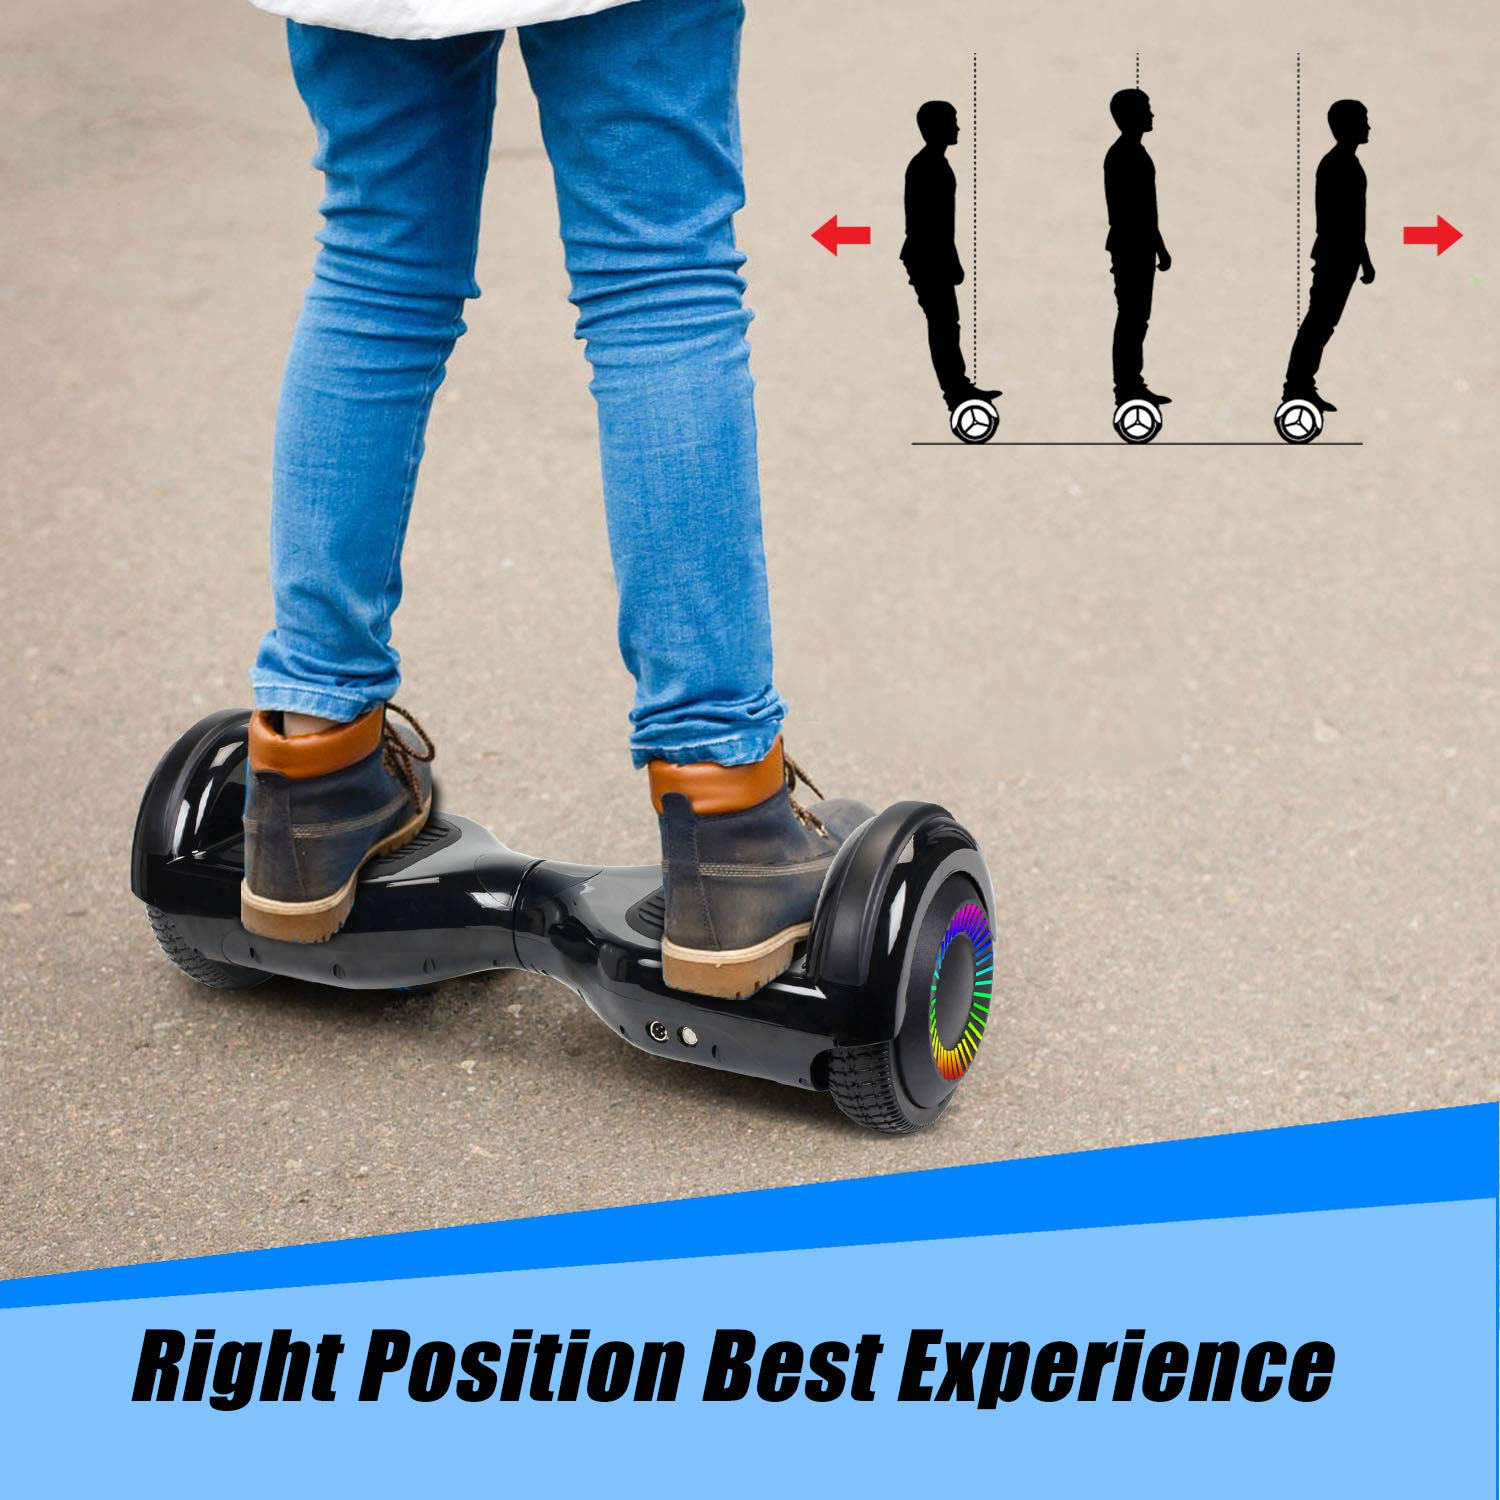 """SWEETBUY Hoverboard UL 2272 Certified 6.5"""" Two-Wheel Bluetooth Self Balancing Electric Scooter with LED Light Flash Lights Wheels Black (Free Carry Bag) by SWEETBUY (Image #6)"""